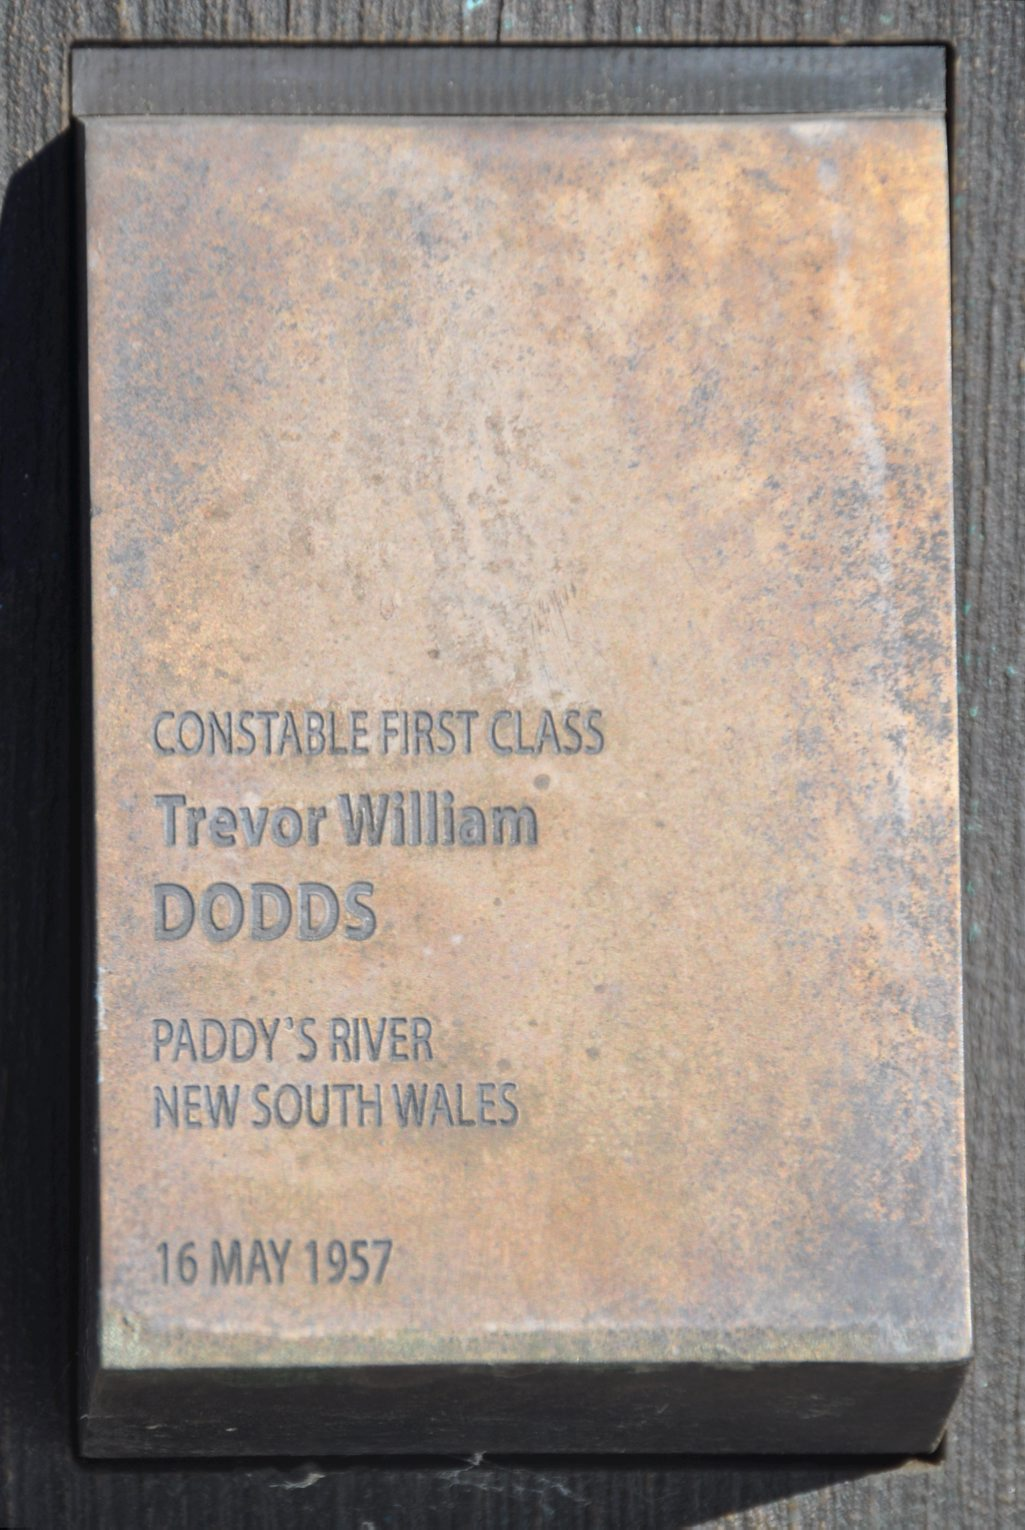 TOUCH PLATE FOR CONSTABLE 1st CLASS TREVOR WILLIAM DODDS, CANBERRA WALL OF REMEMBRANCE